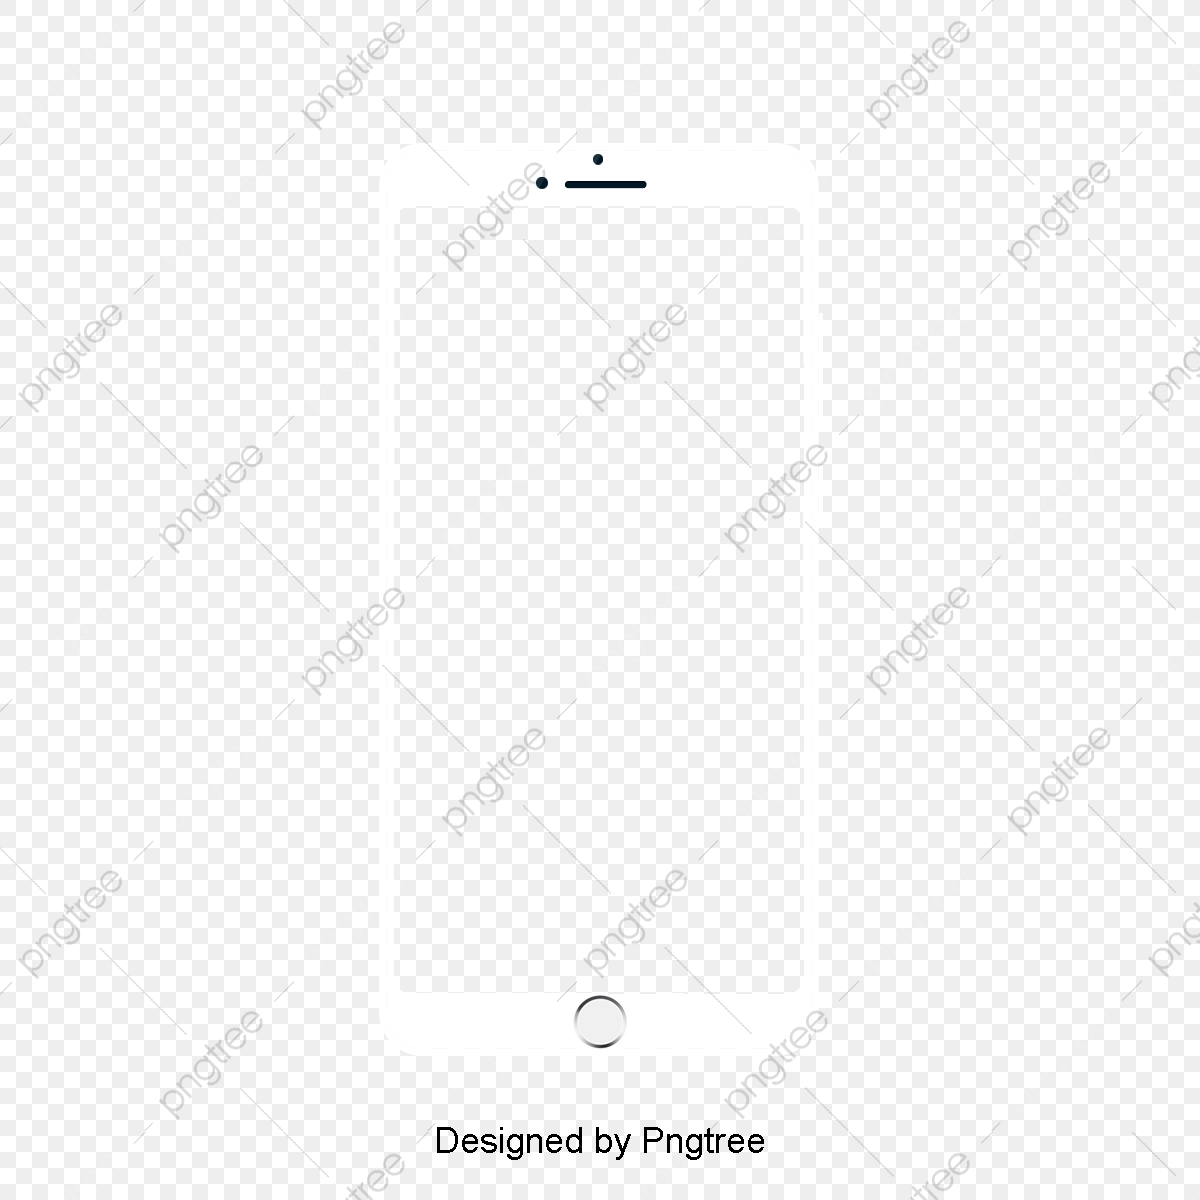 Phone Frame, Phone Clipart, Frame Clipart, White PNG